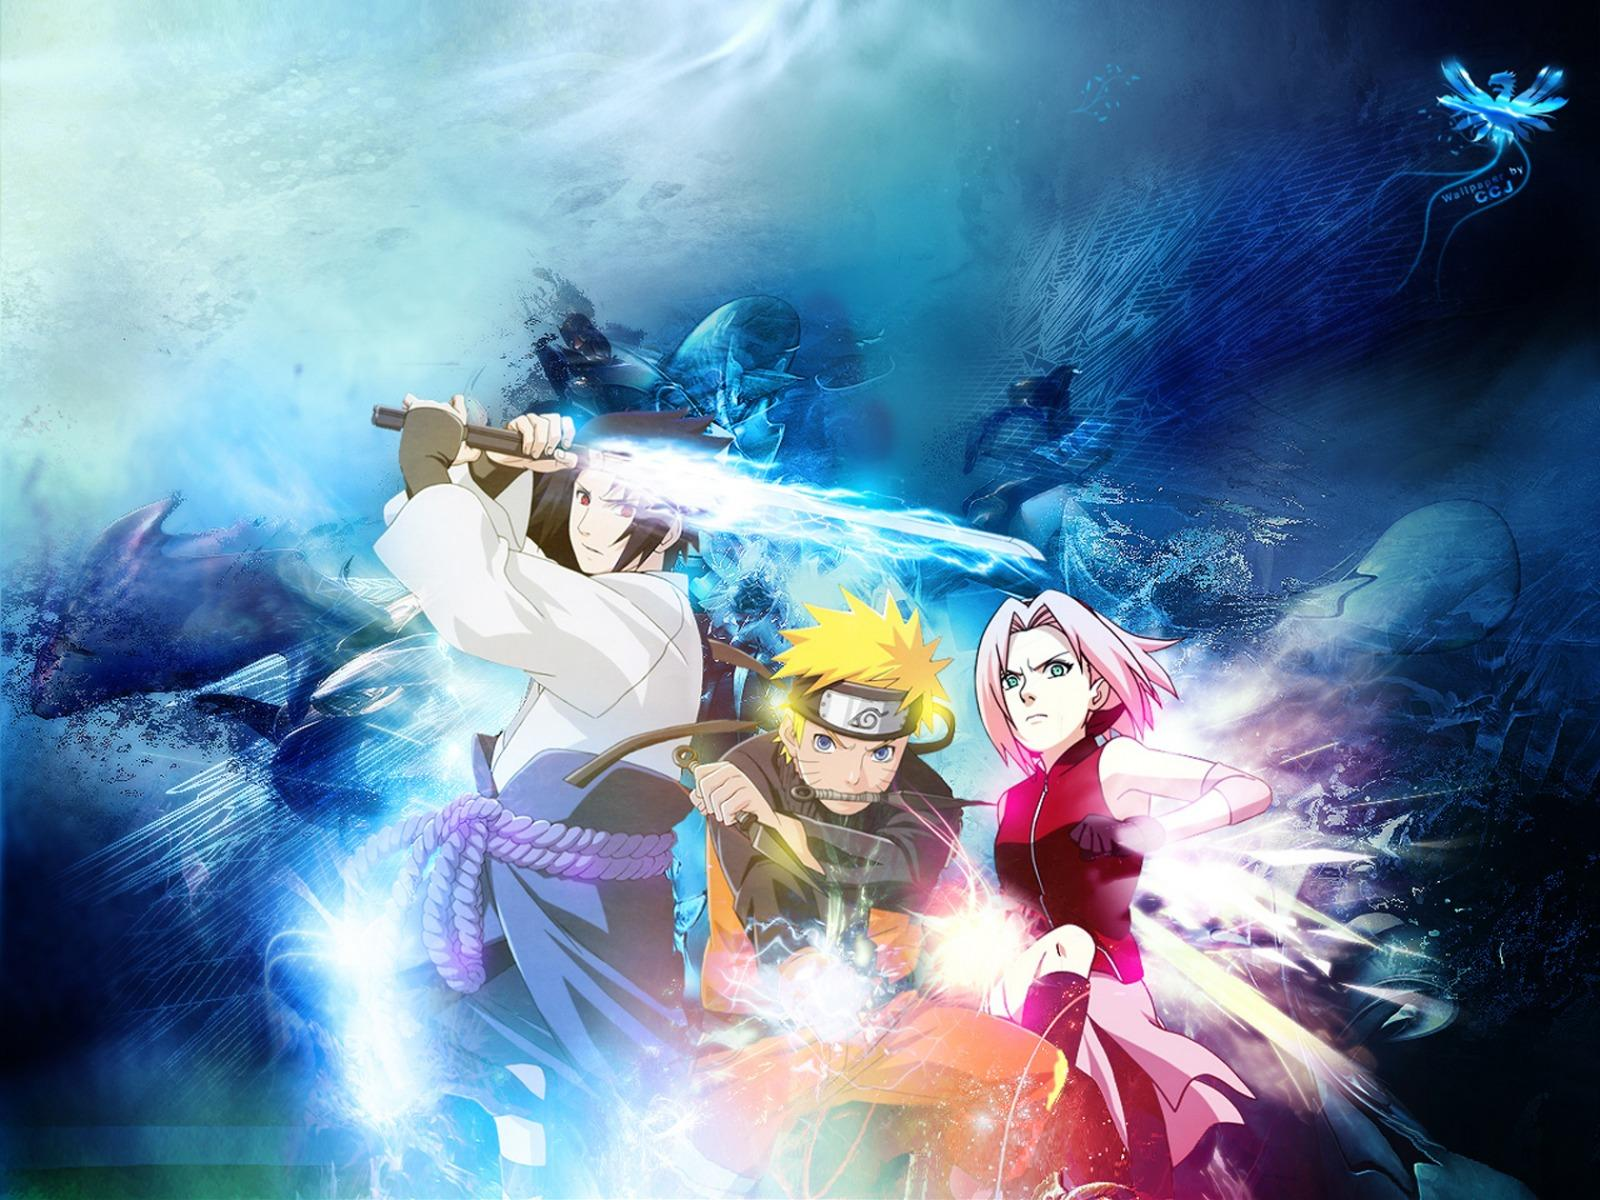 Naruto Shippuden HQ Wallpapers  Fondos de Pantalla HD Naruto Shippuden:Hot Bollywood and